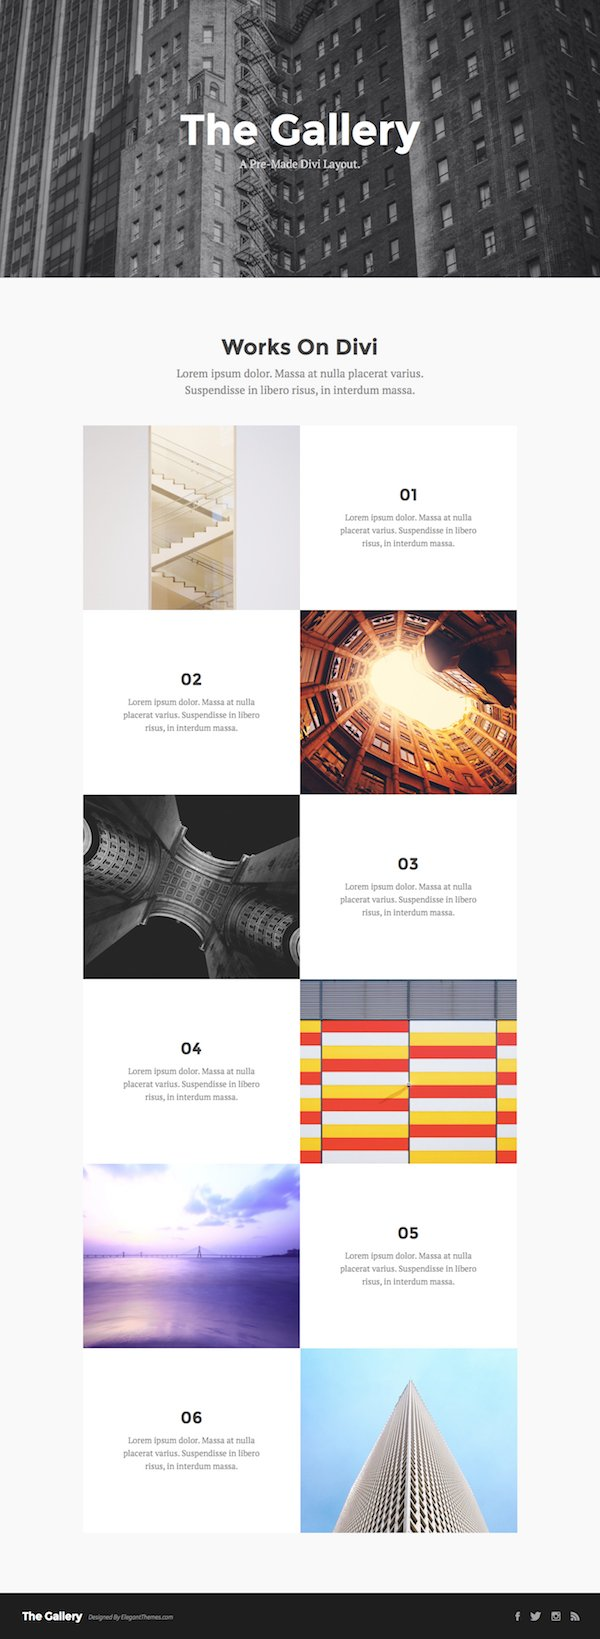 divi-gallery-page-layout-01-full